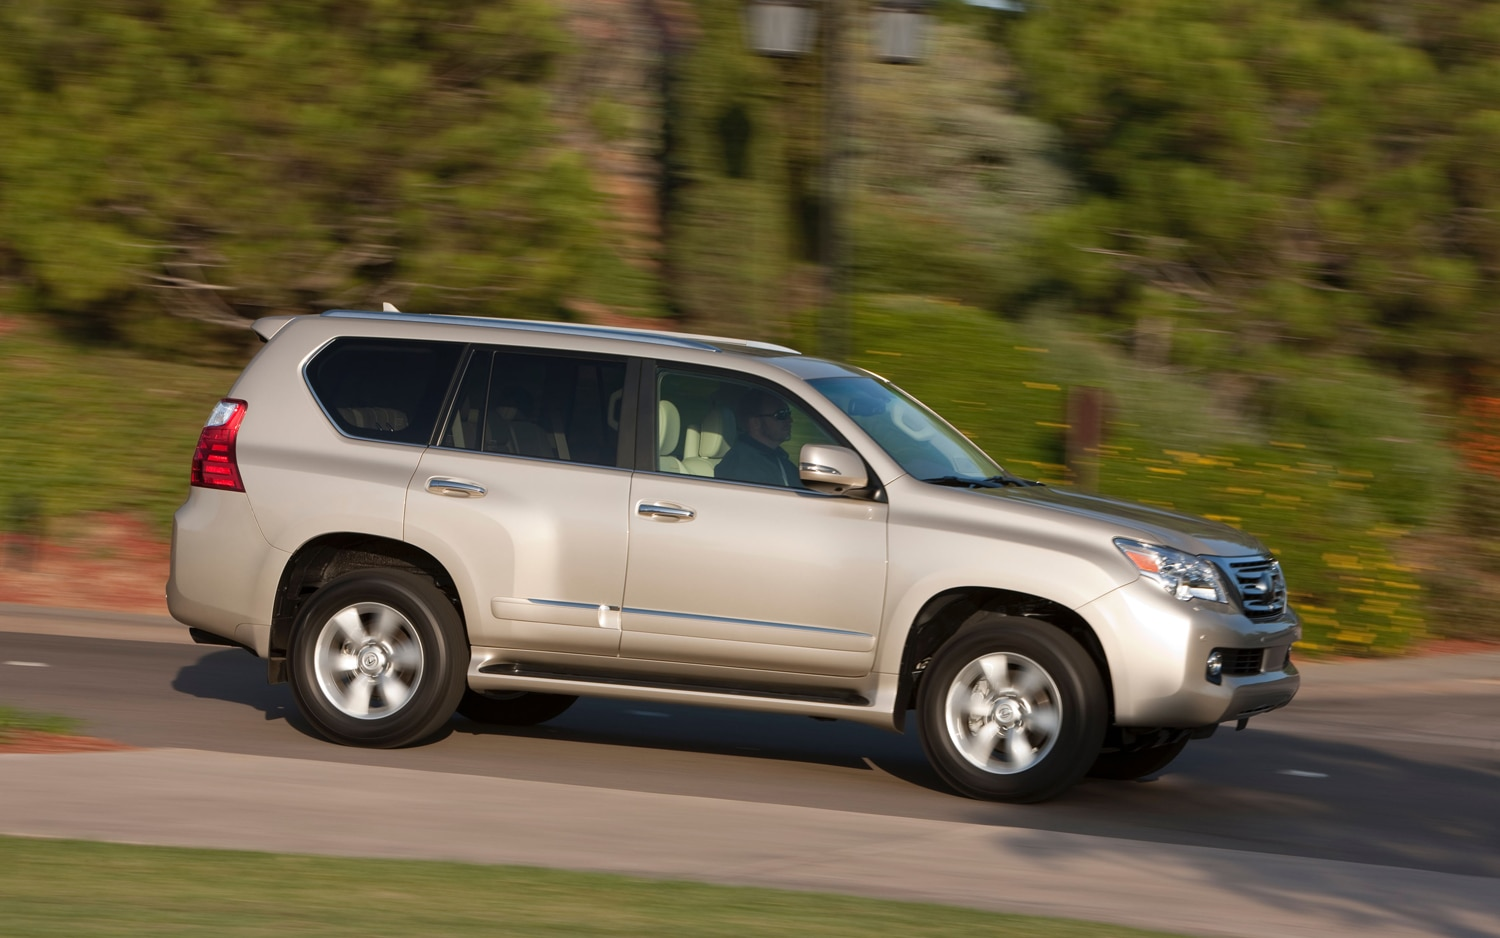 2013 Lexus GX 460 Side In Motion